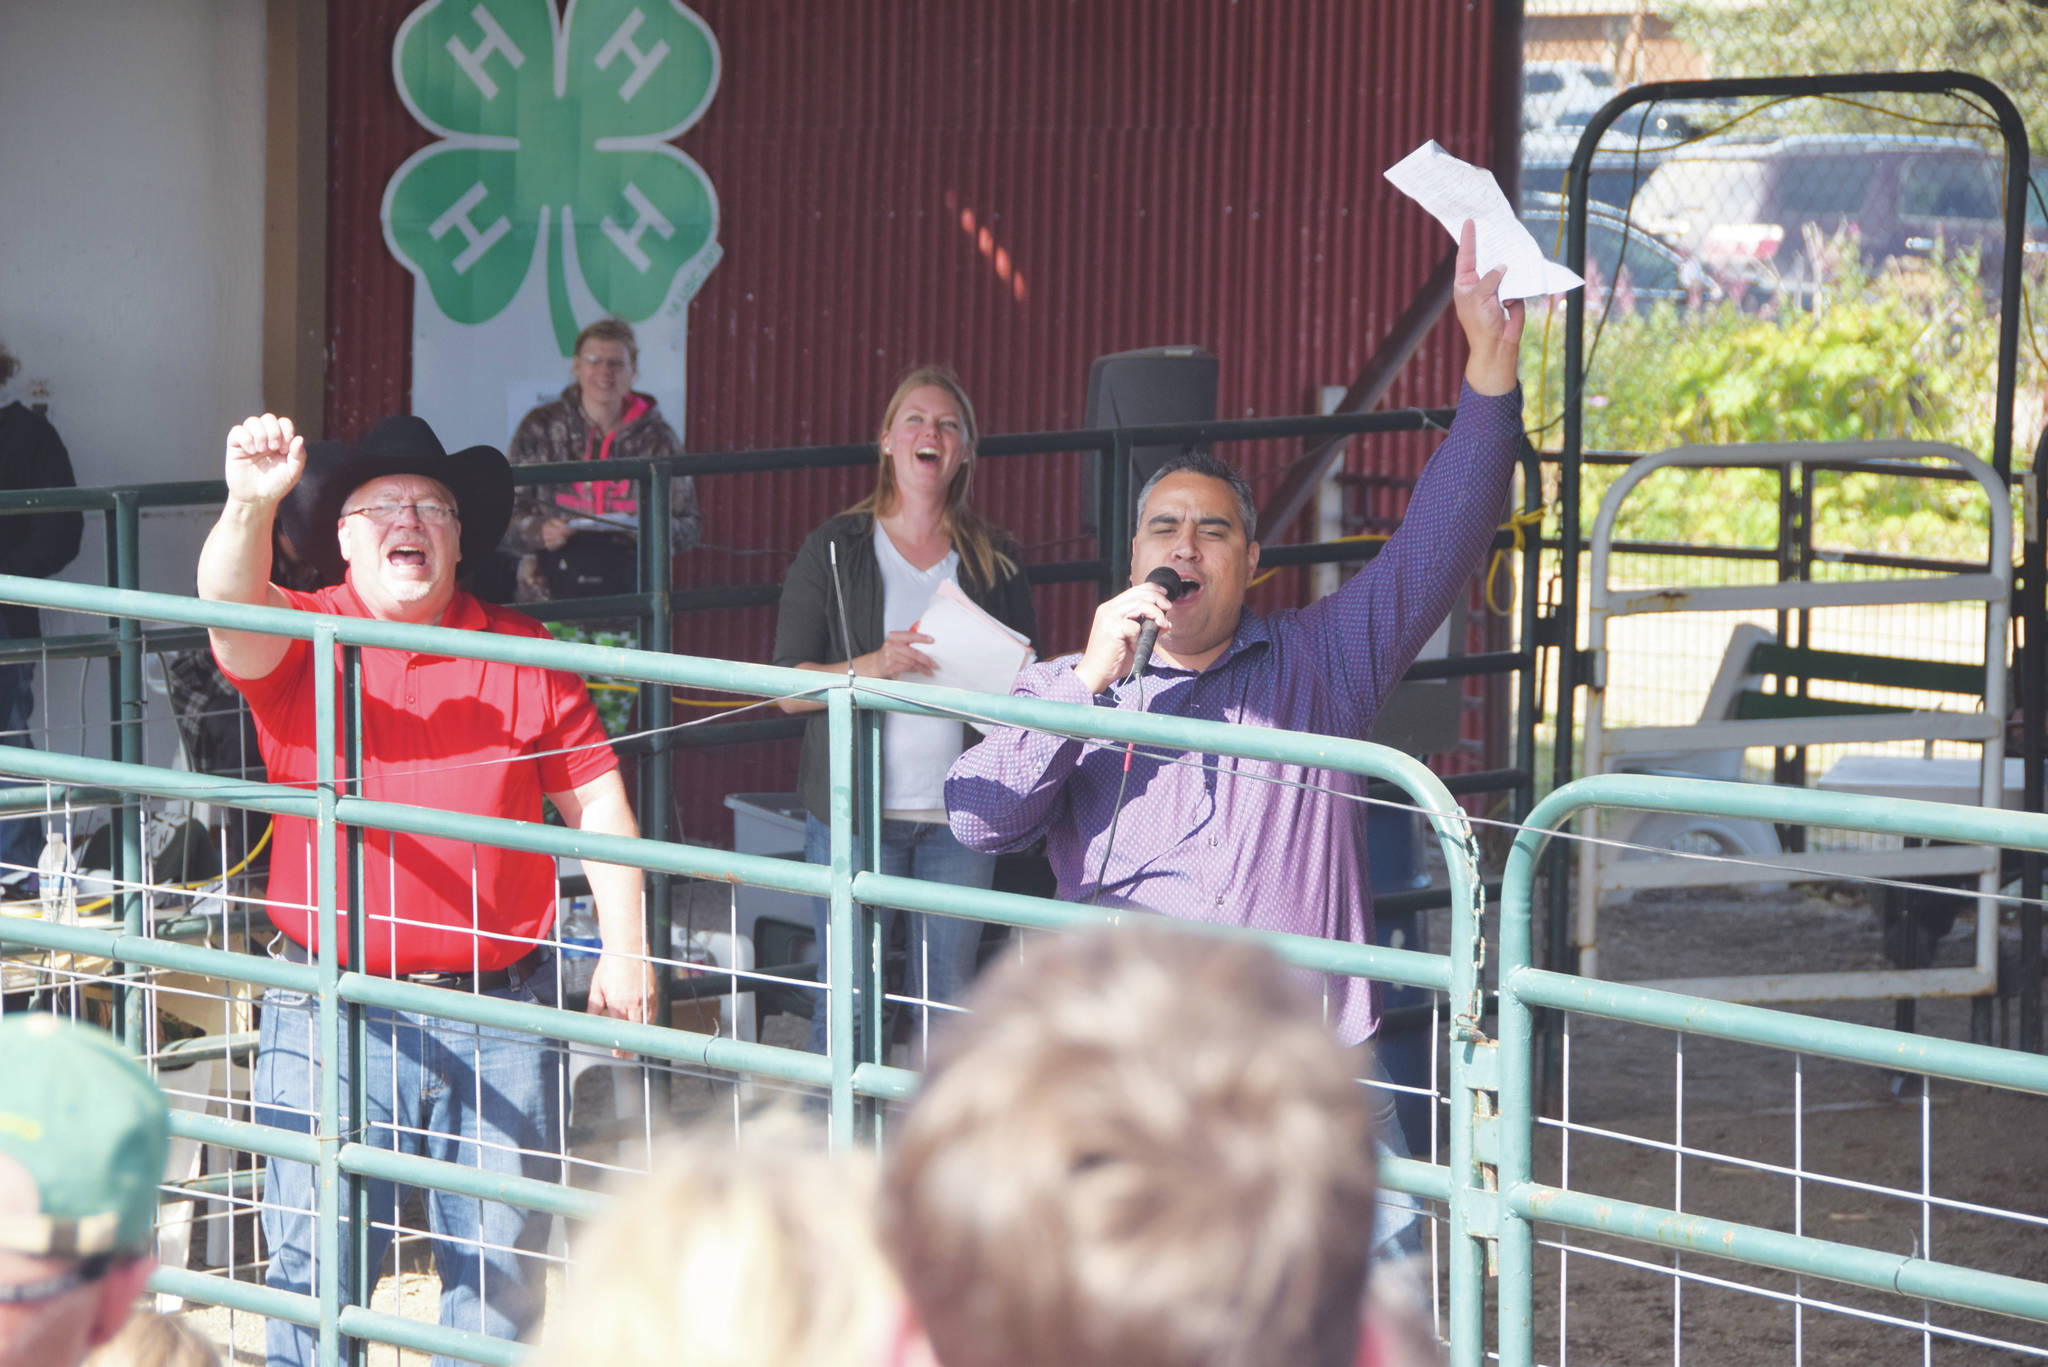 Peninsula Clarion file Auctioneers Andy Kriner, left, and Rayne, Reynolds celebrate a successful sale during the 4-H Junior Market Livestock Auction at the Kenai Peninsula Fair on Aug. 17, 2019 at the fairgrounds in Ninilchik.